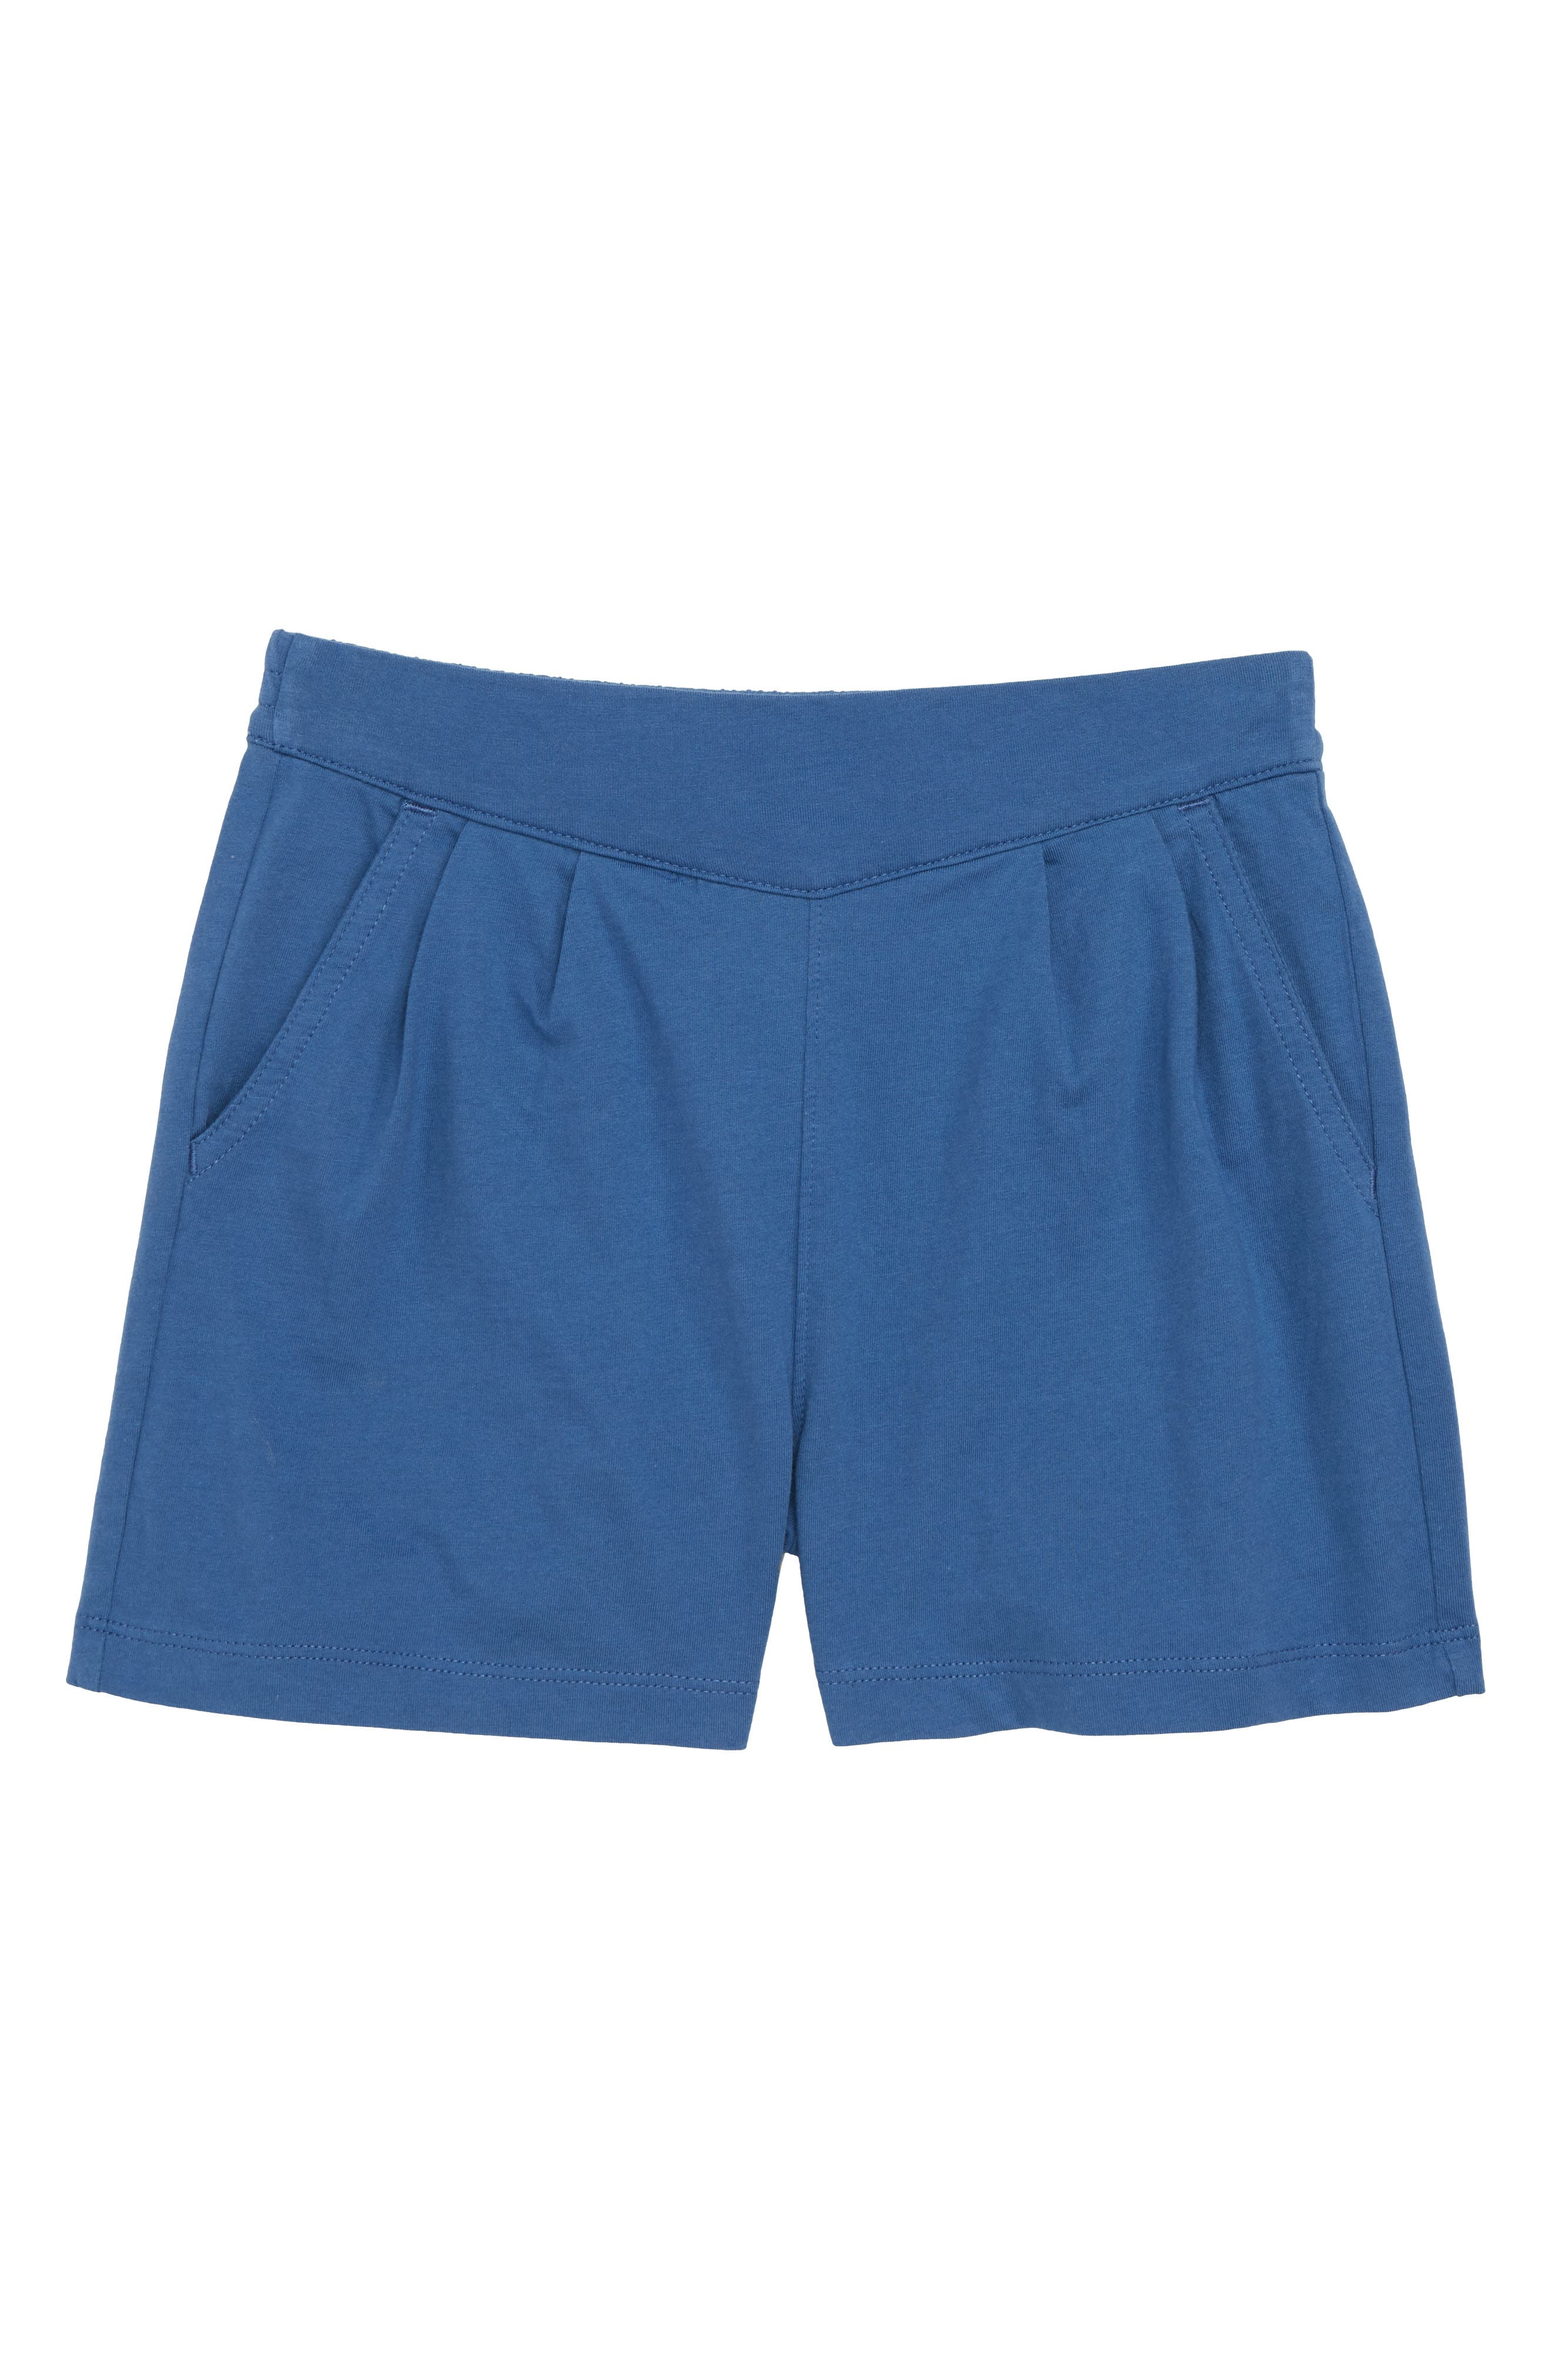 Boat Dock Shorts,                             Main thumbnail 1, color,                             415